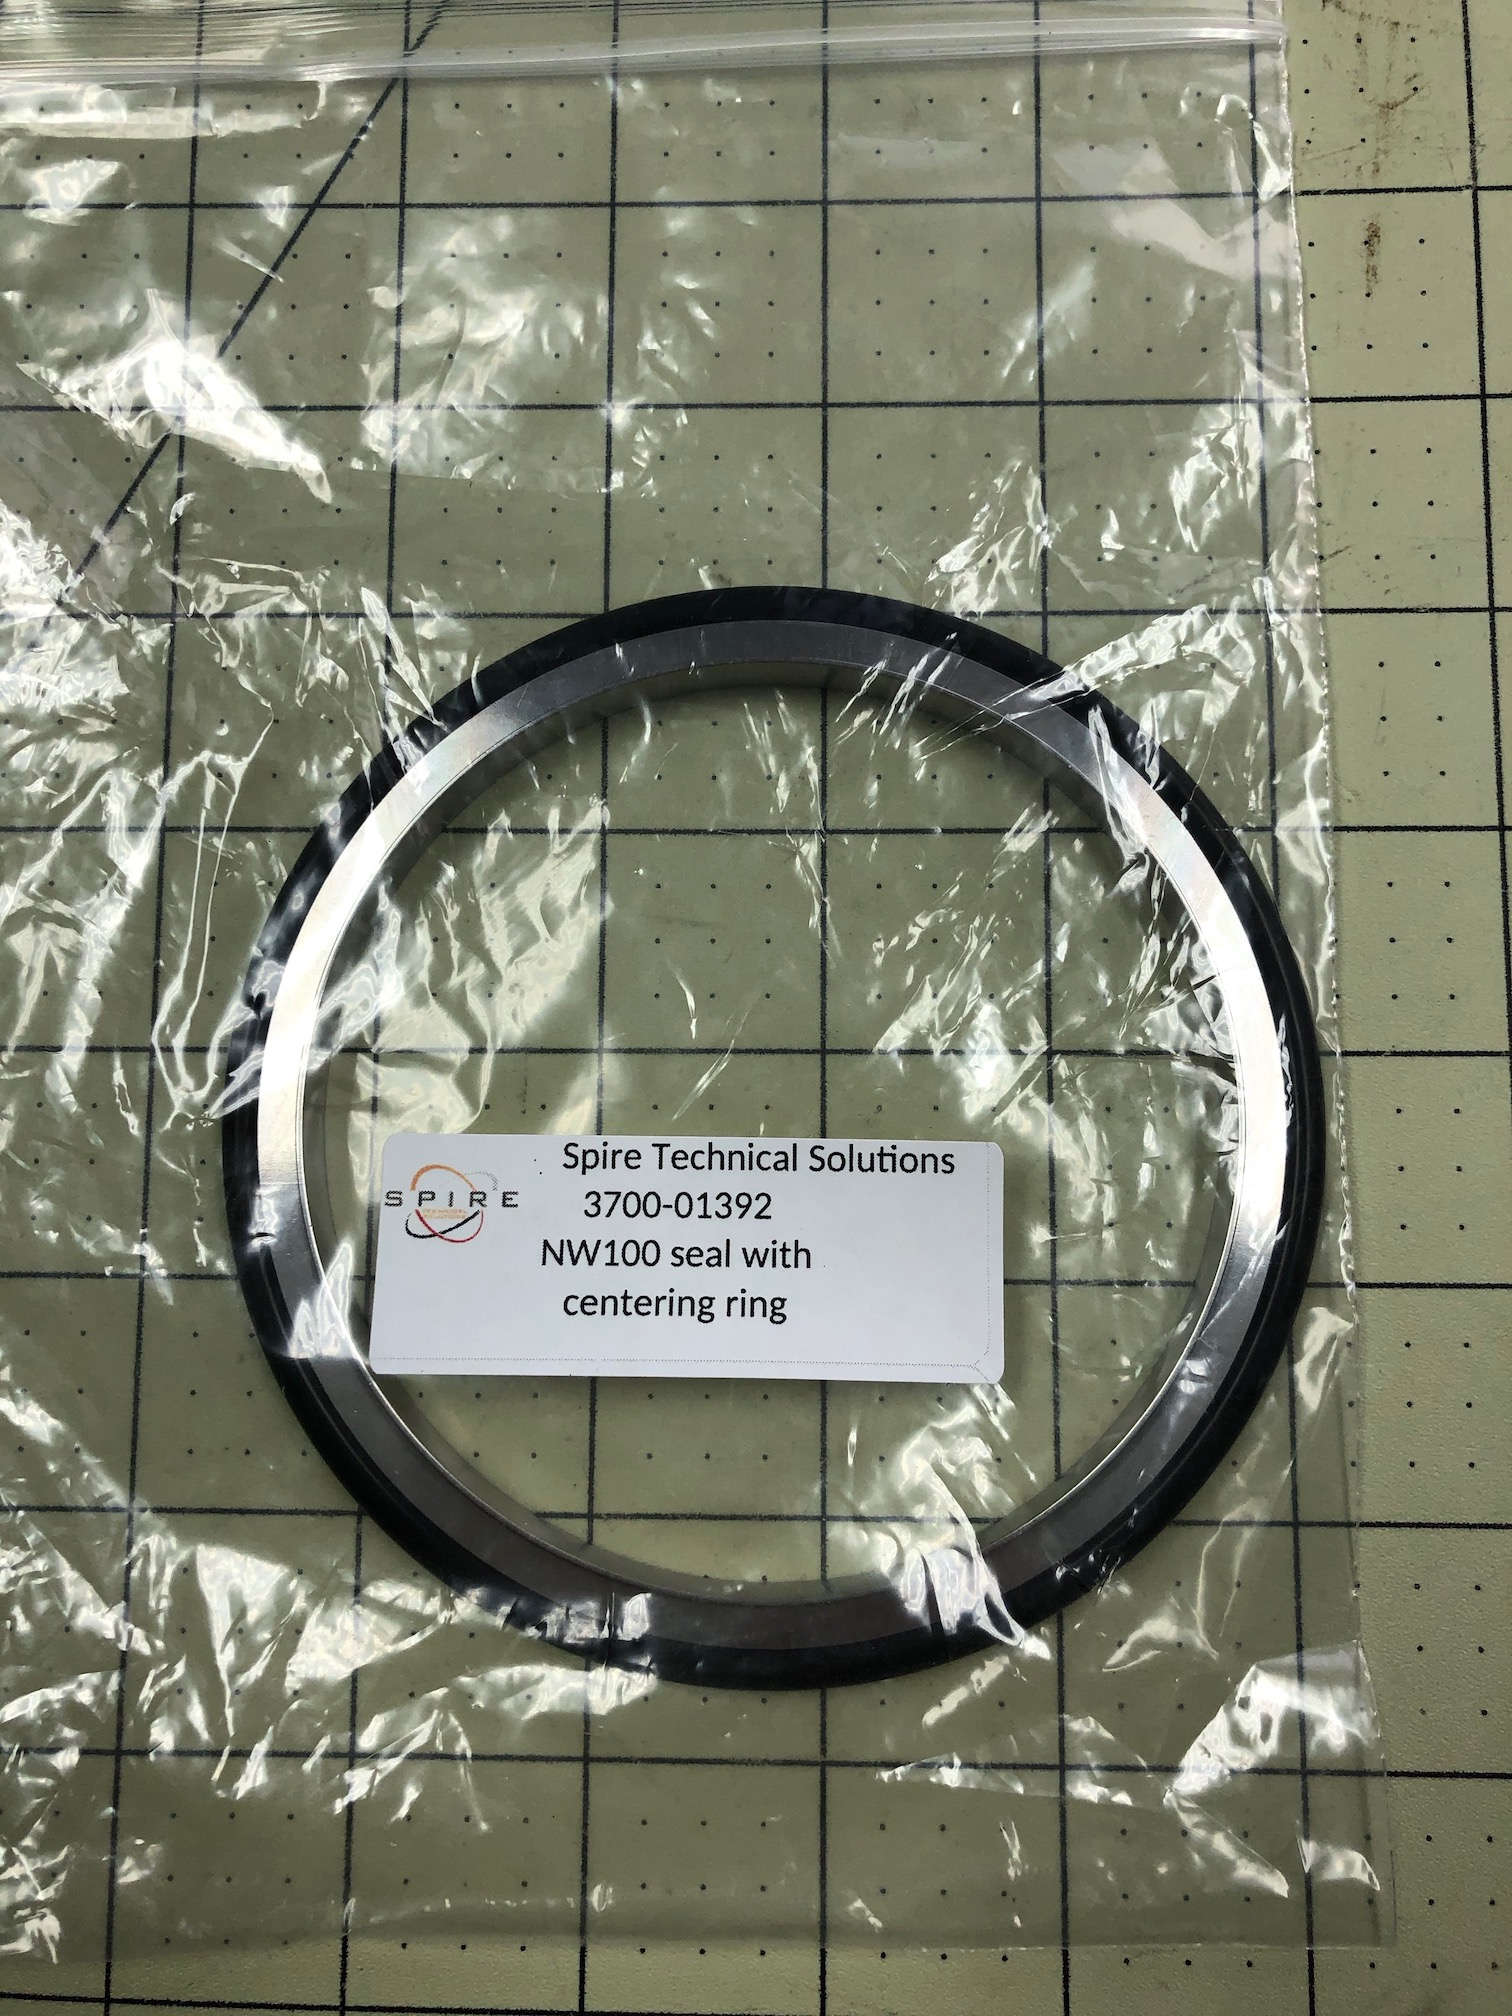 NW100 seal with centering ring